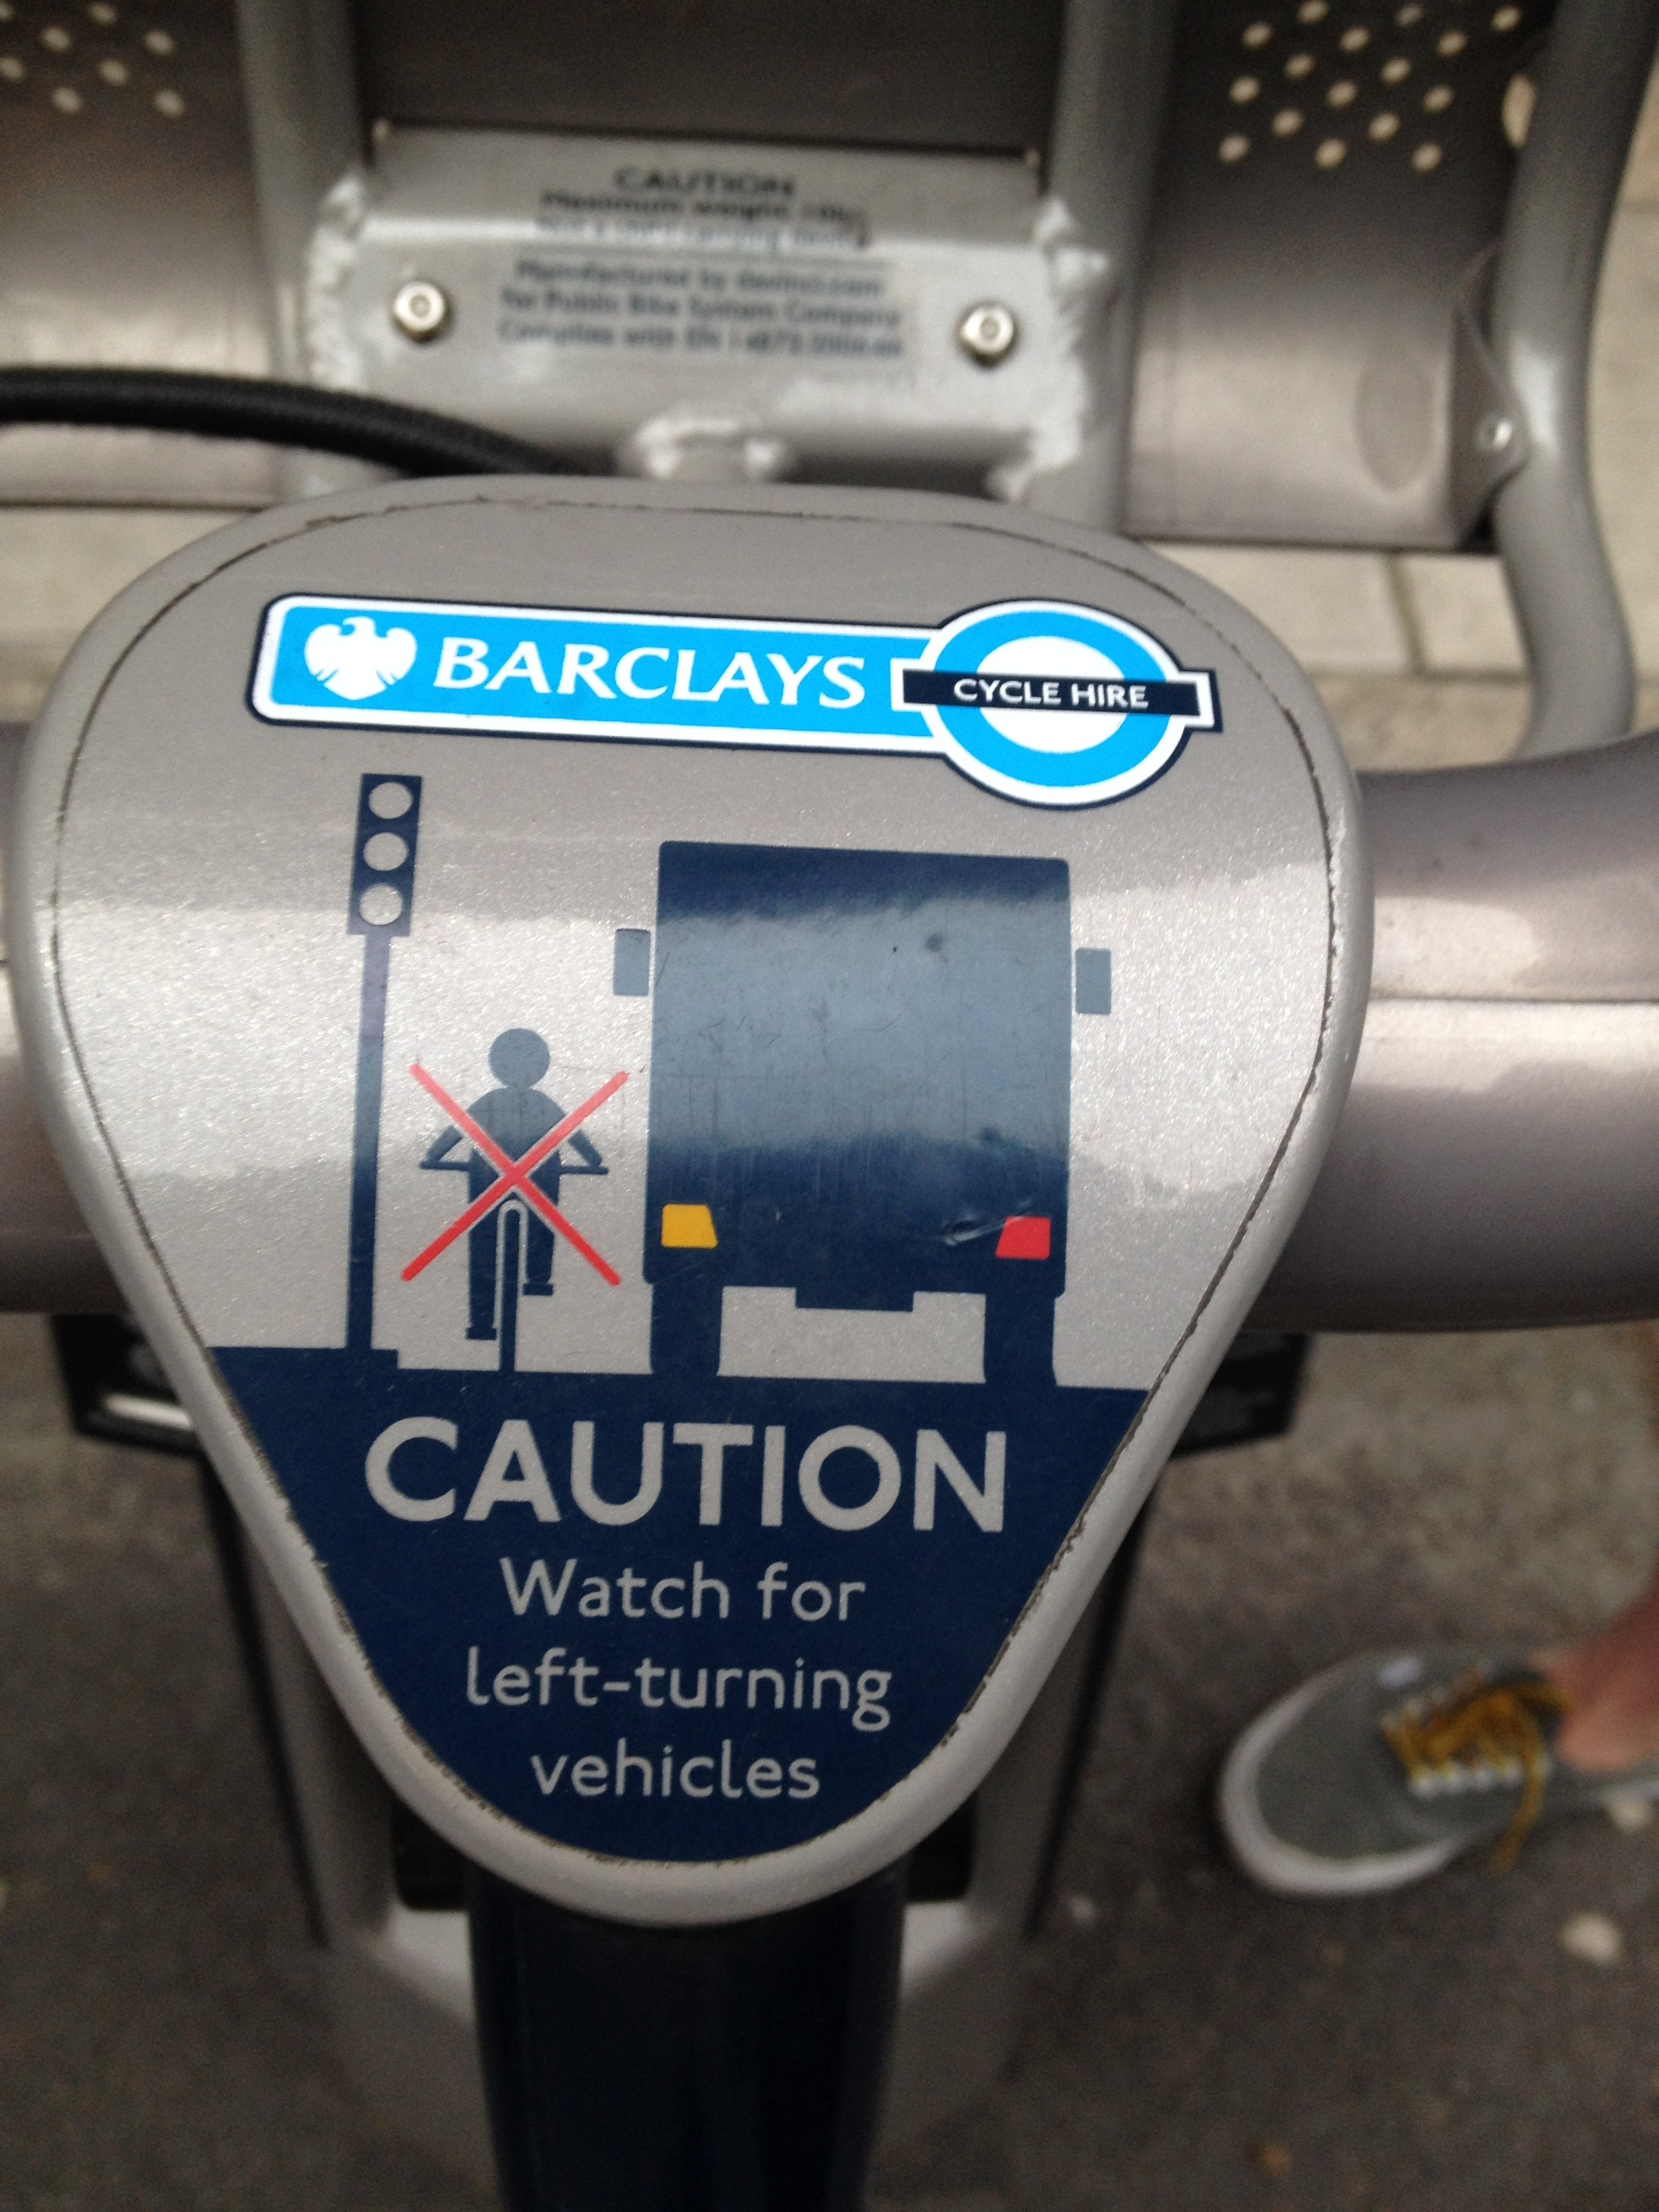 London's roads – how safe are cyclists?